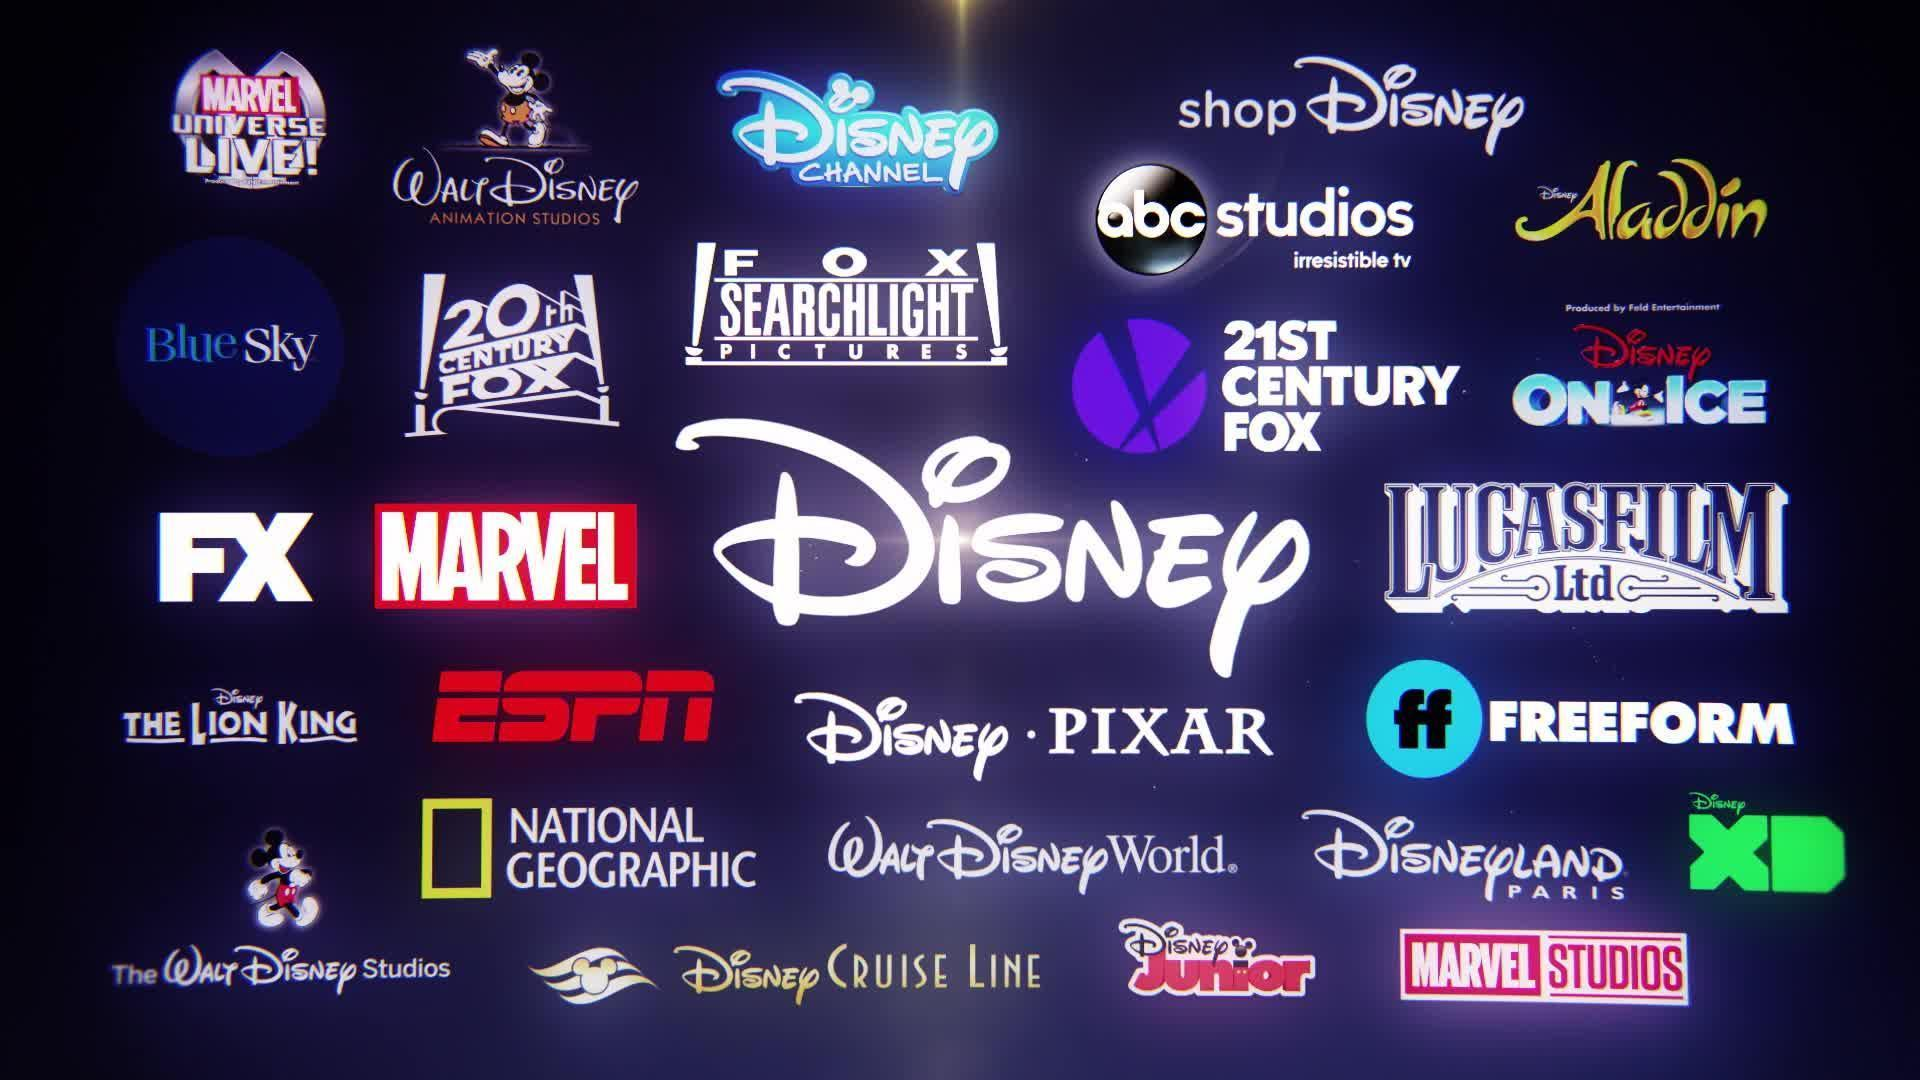 About Us - The Walt Disney Family of Companies Video (PT)